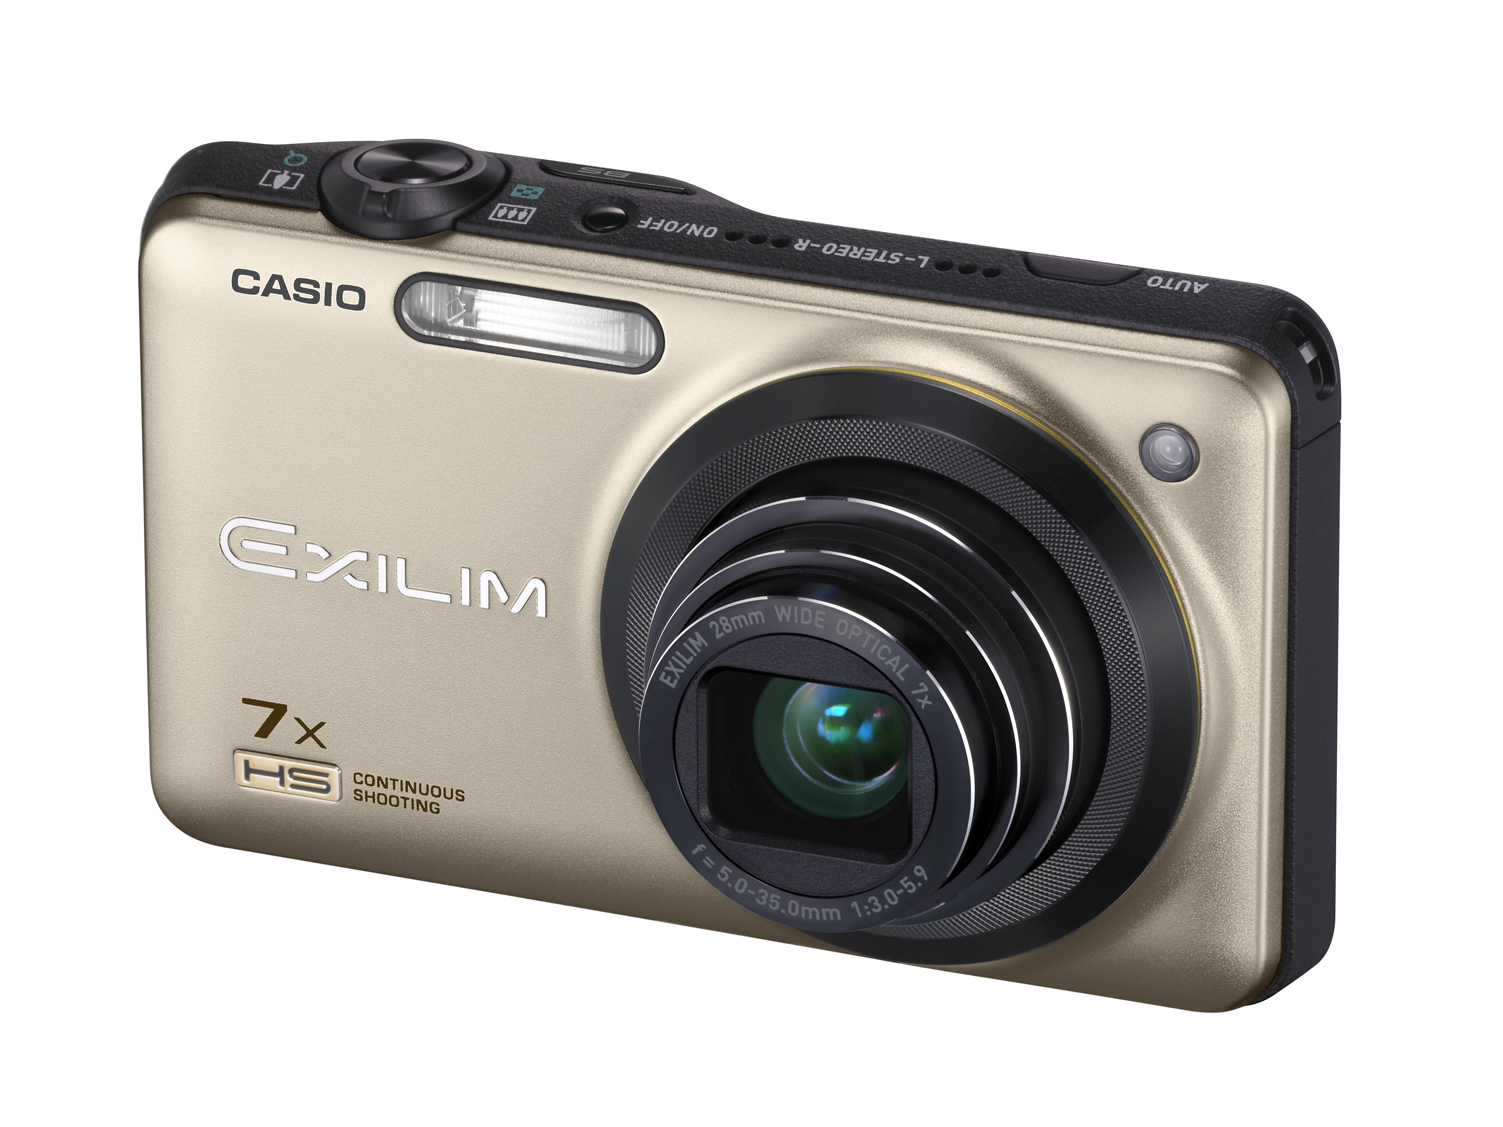 Download Drivers: Casio Exilim High Speed EX-F1/Controller